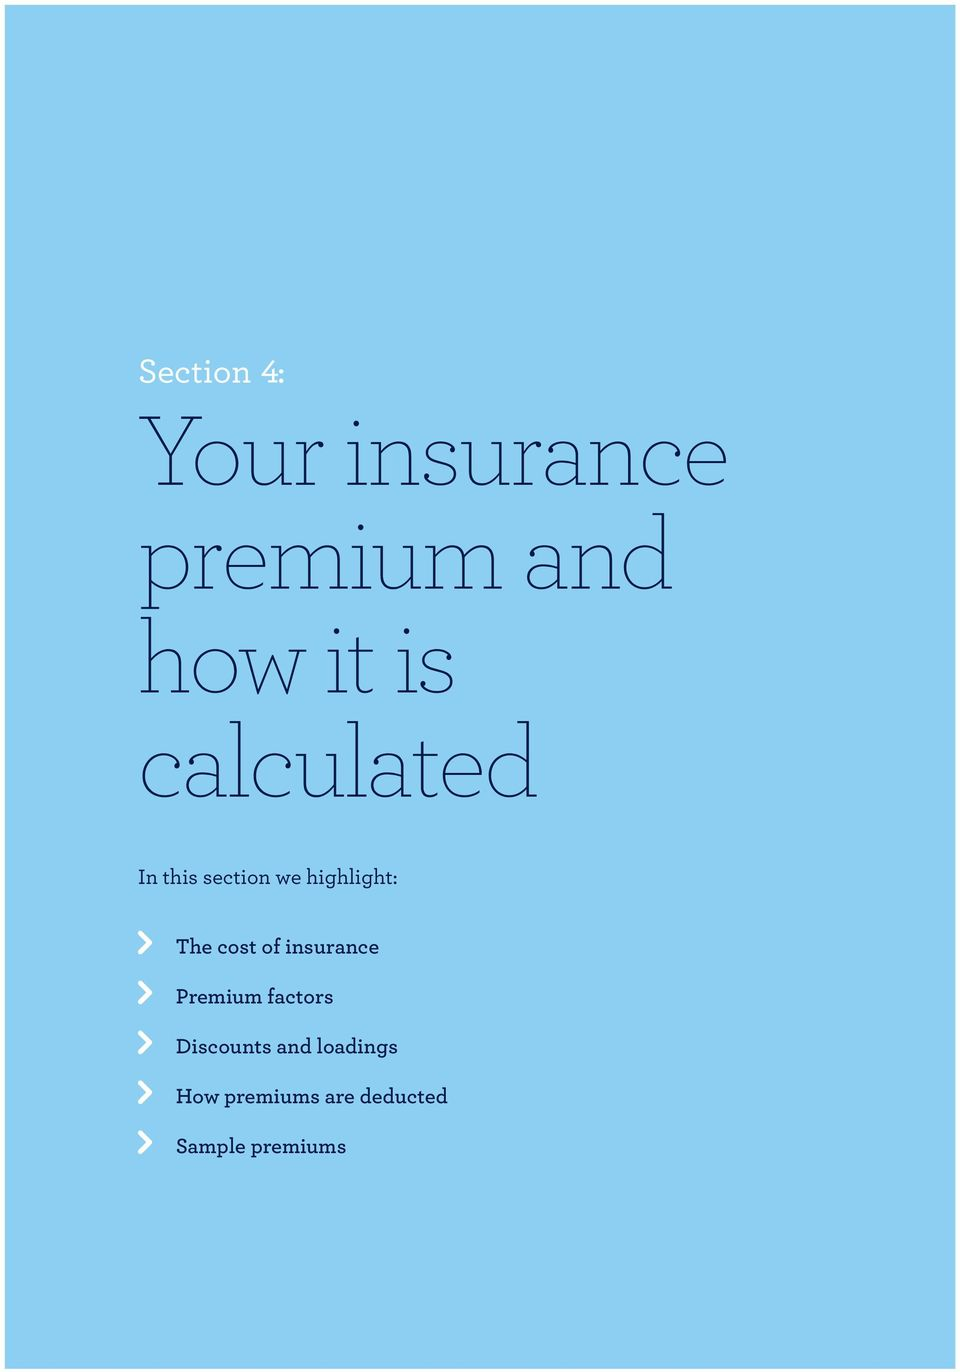 cost of insurance Premium factors Discounts and